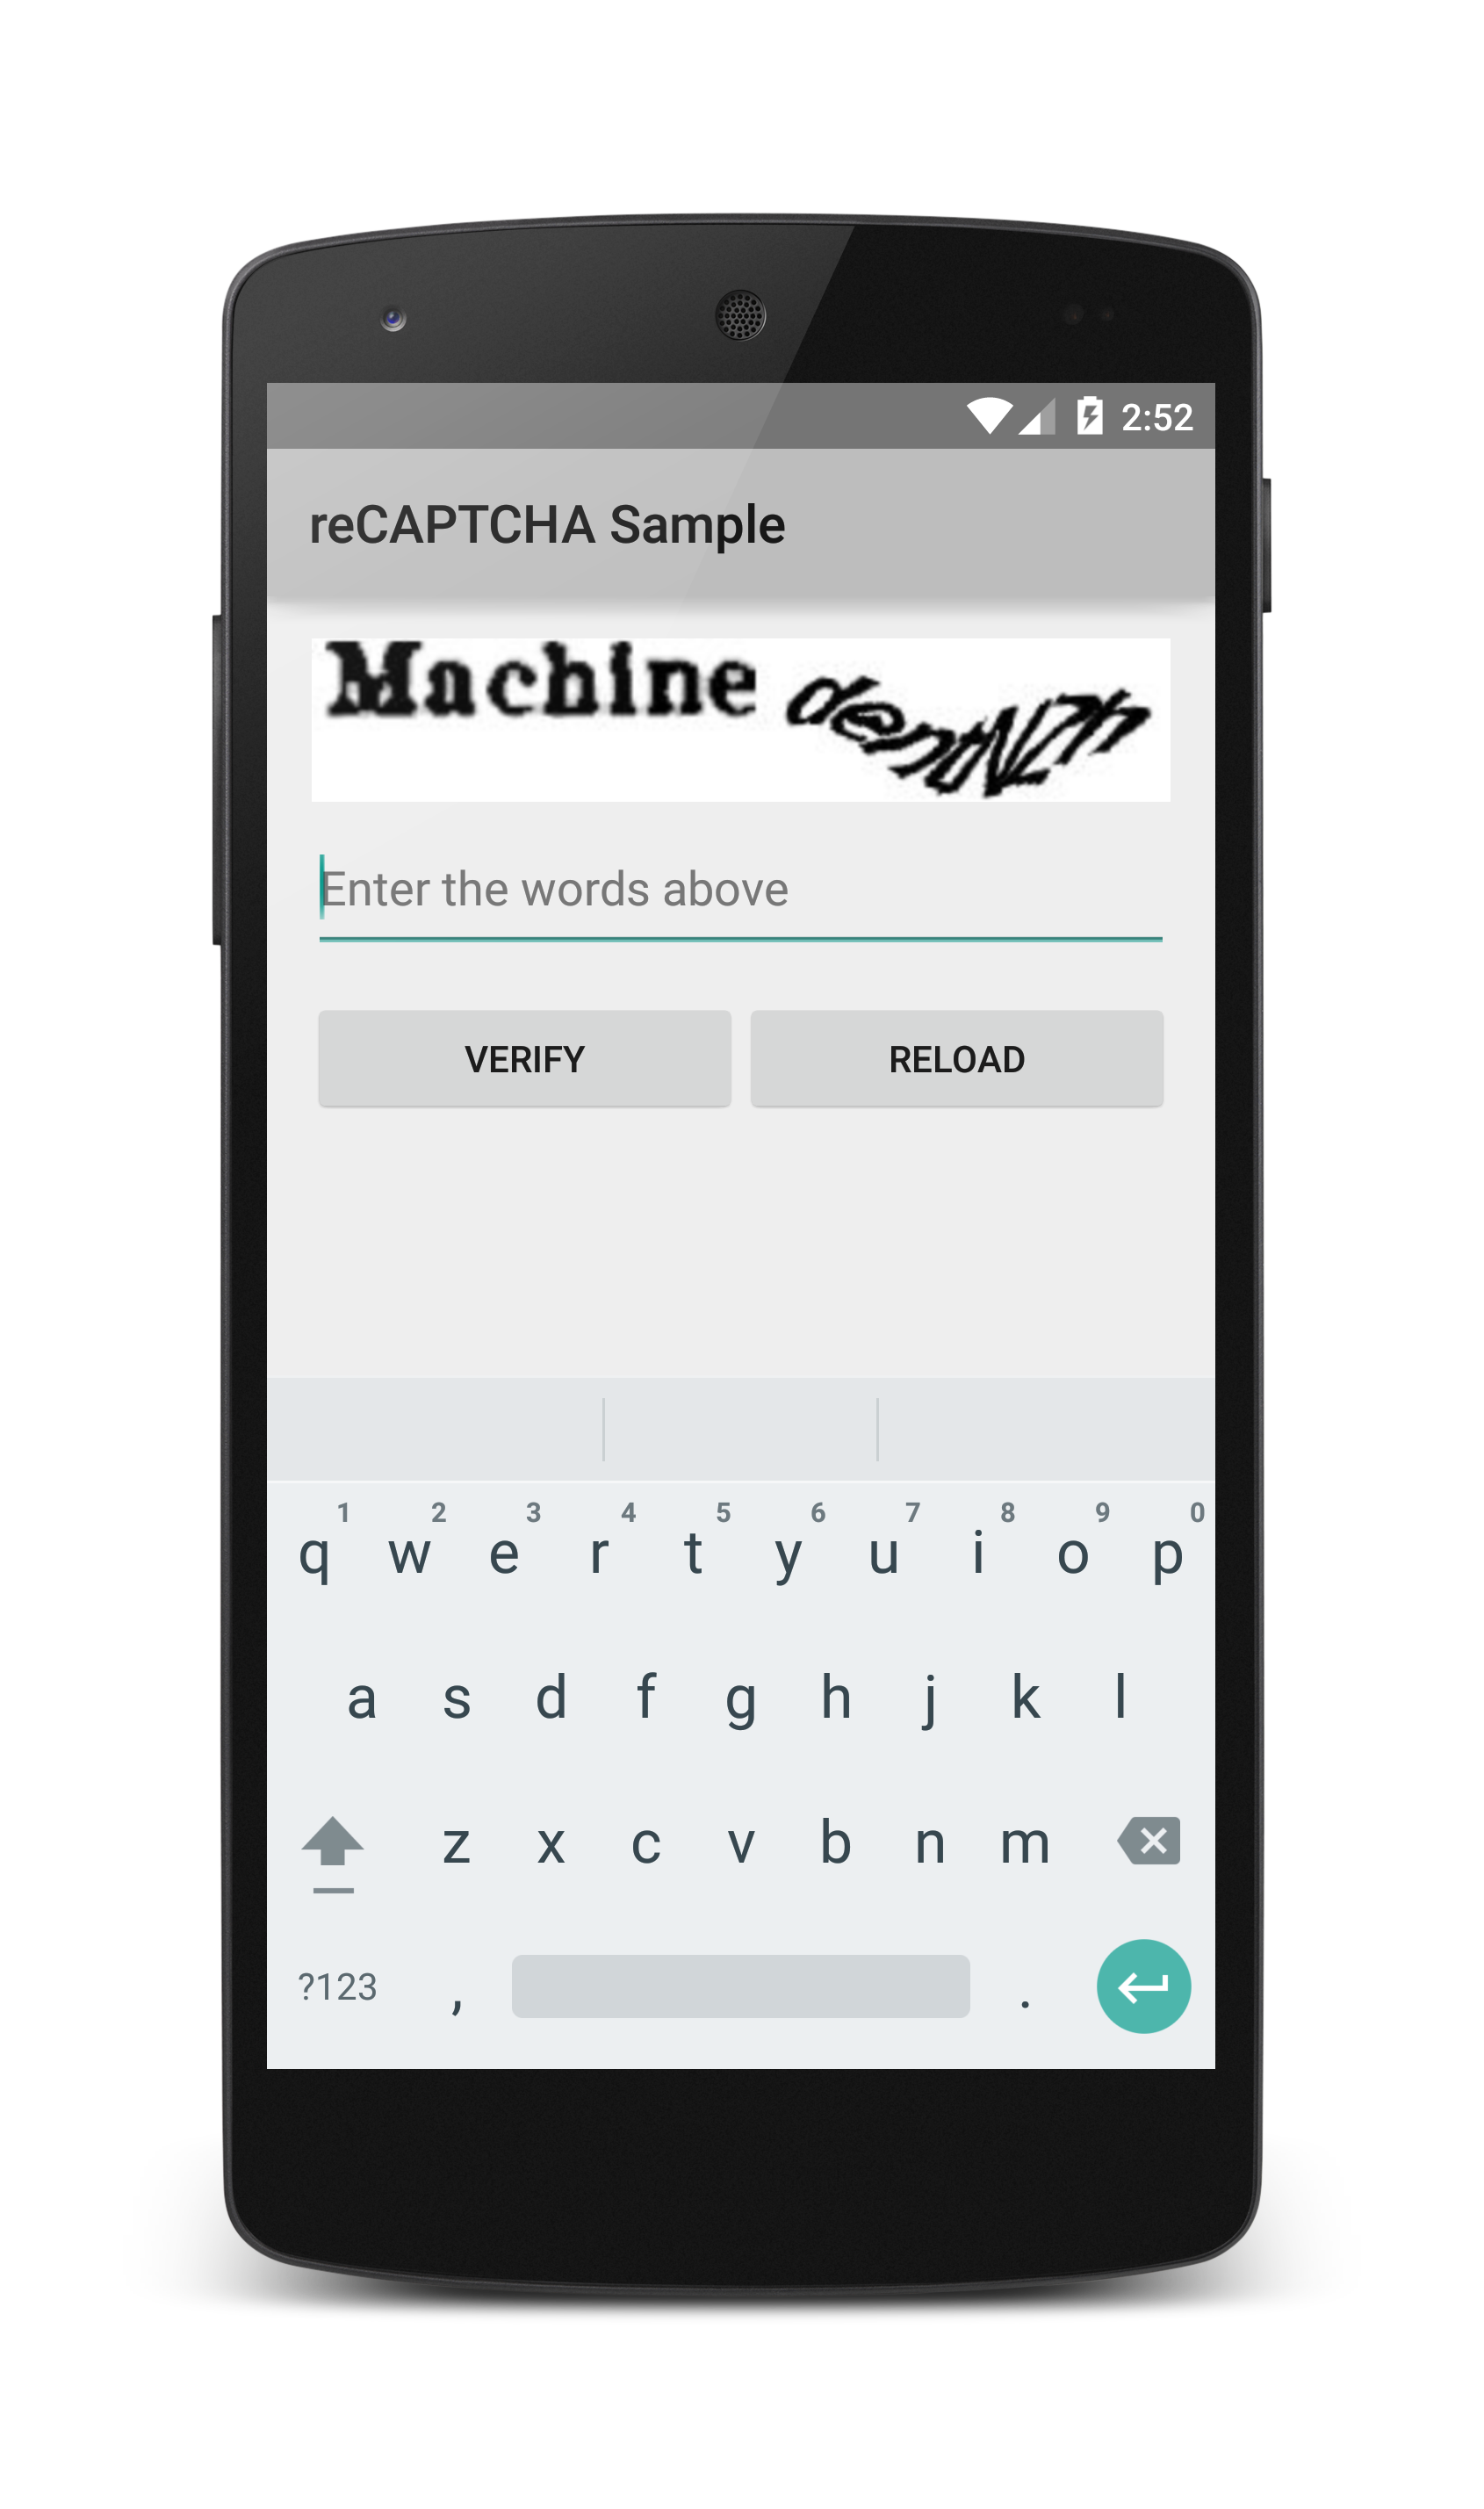 using captcha in mobile apps - Stack Overflow